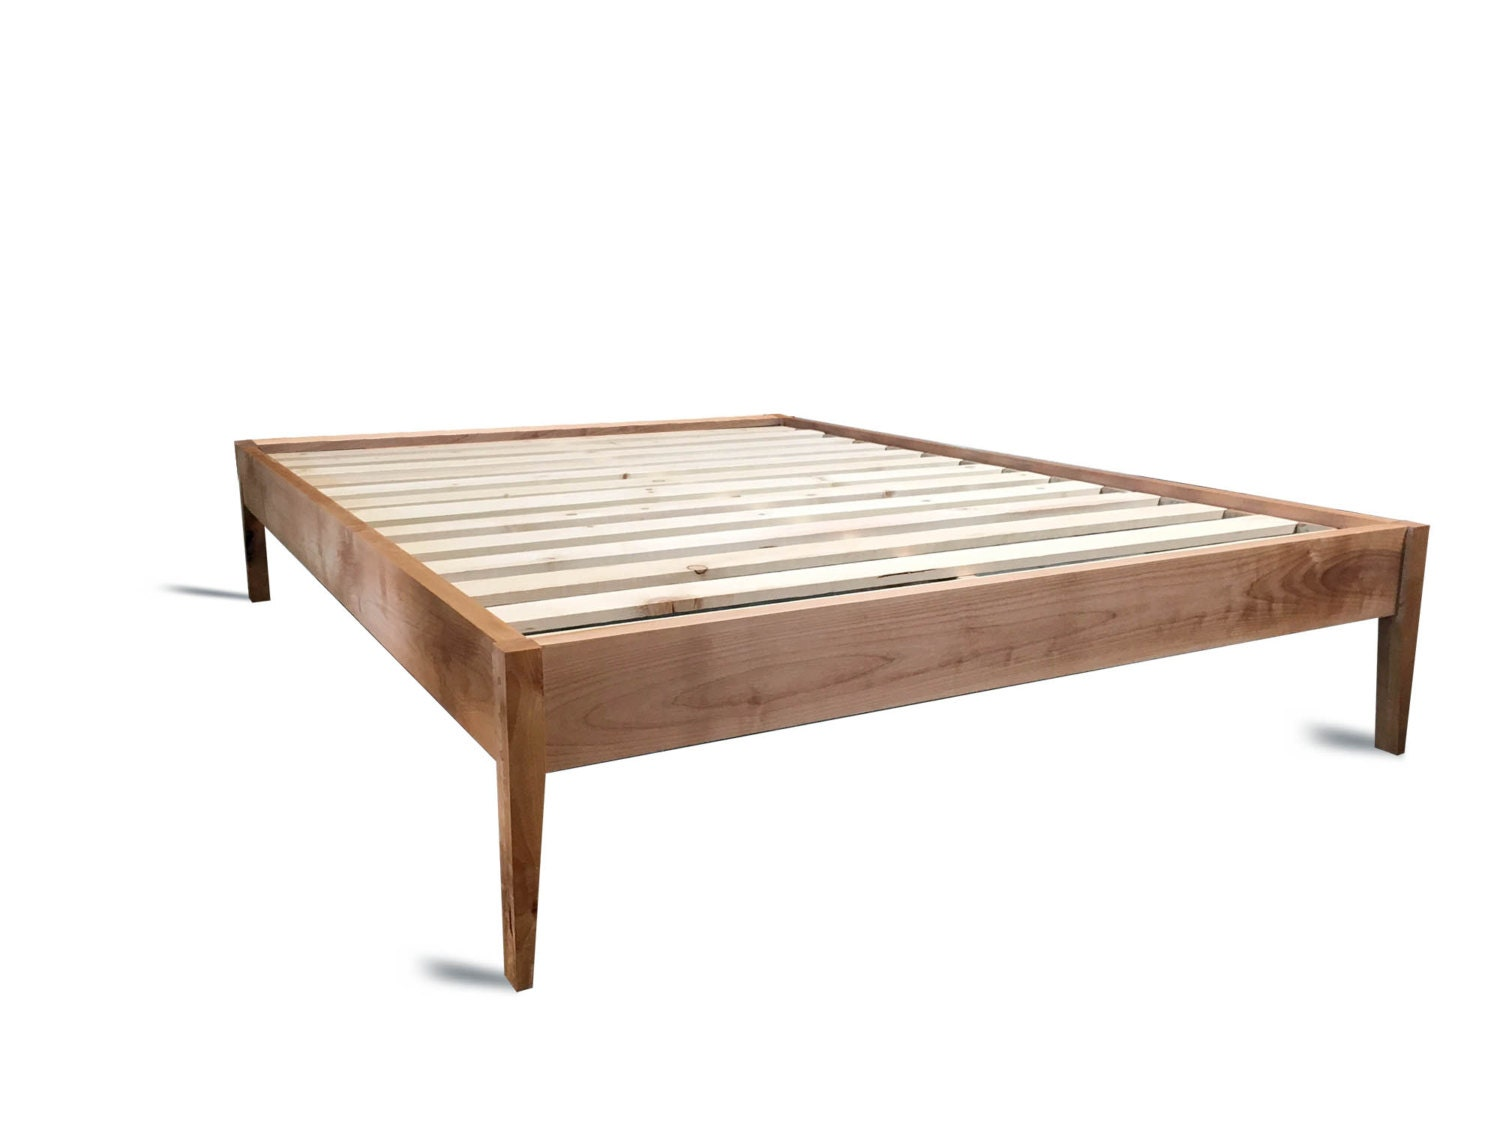 Platform Bed Frame Simple Wood Bed With Sleek Tapered Legs: simple wood bed frame designs